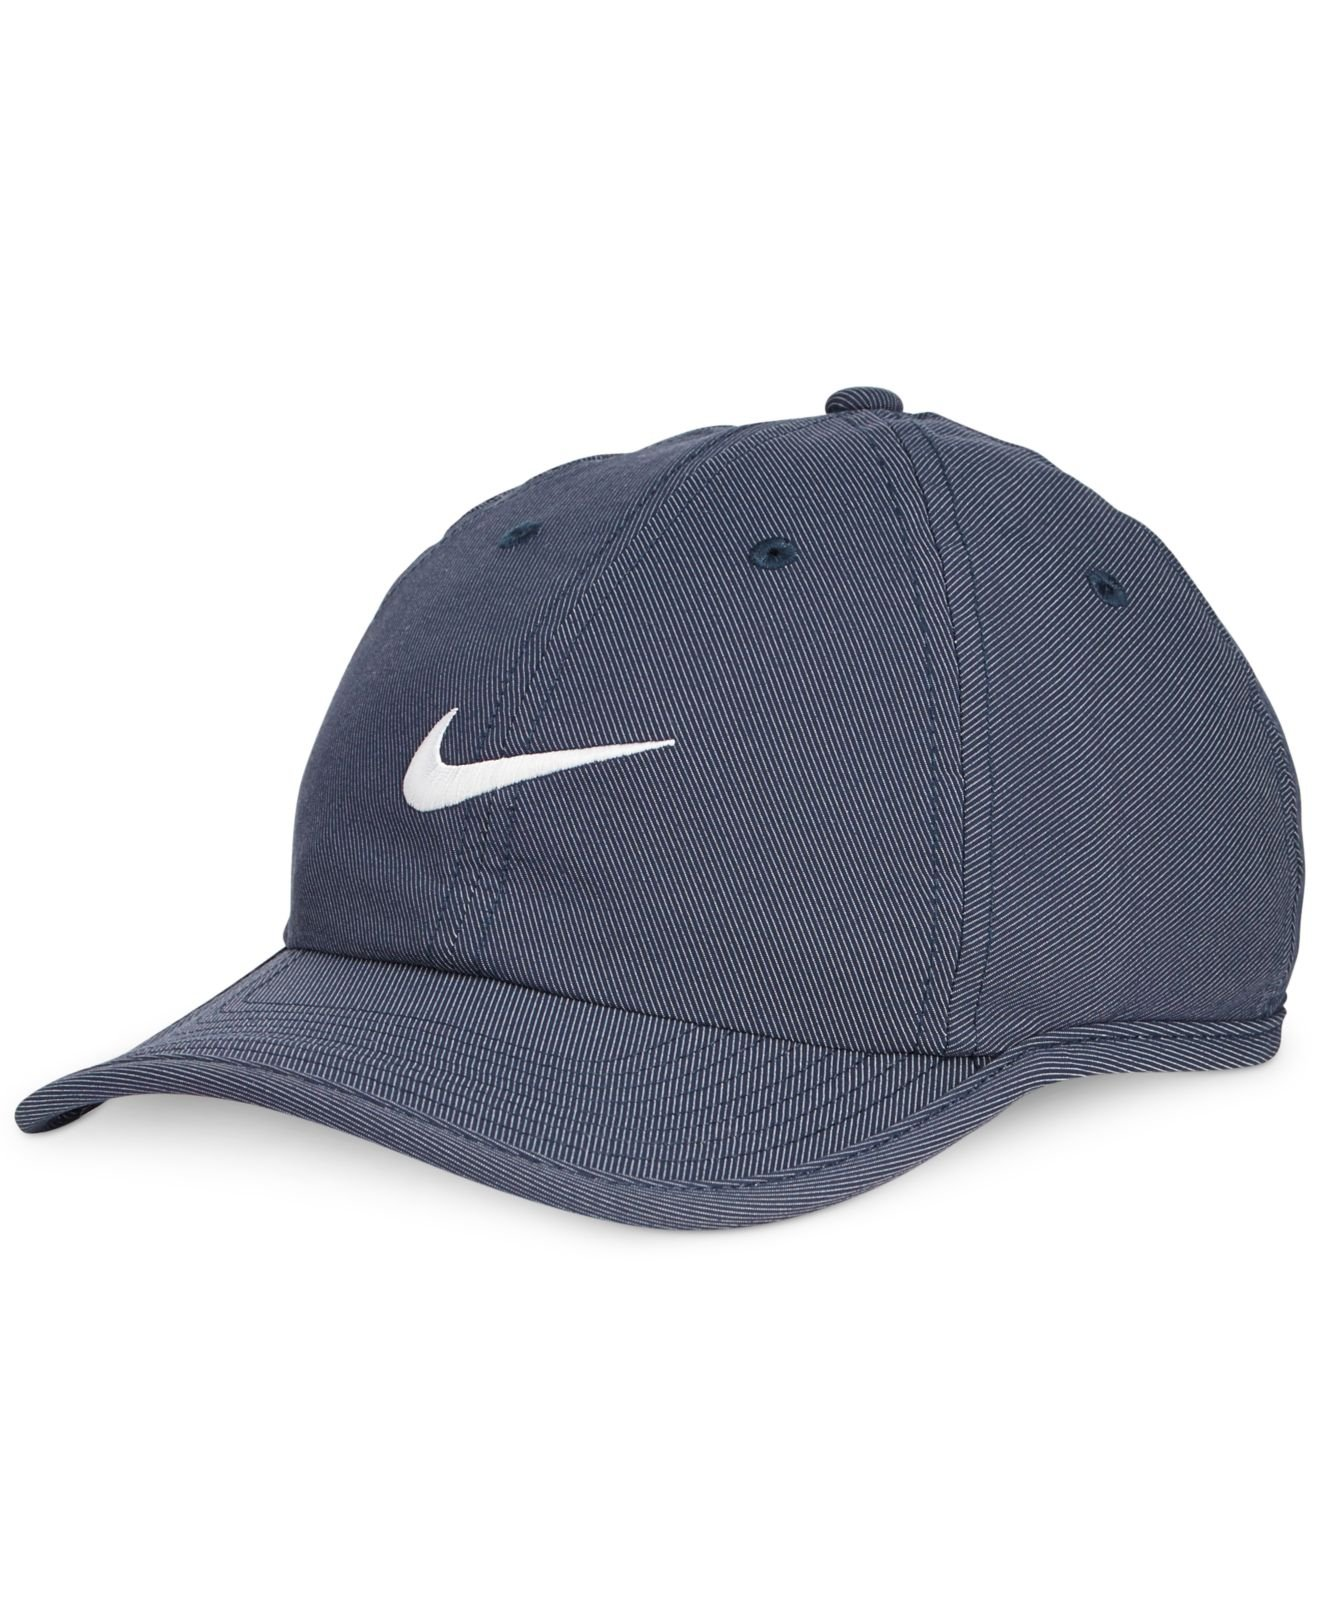 nike heritage dri fit twill hat in blue for obsidian